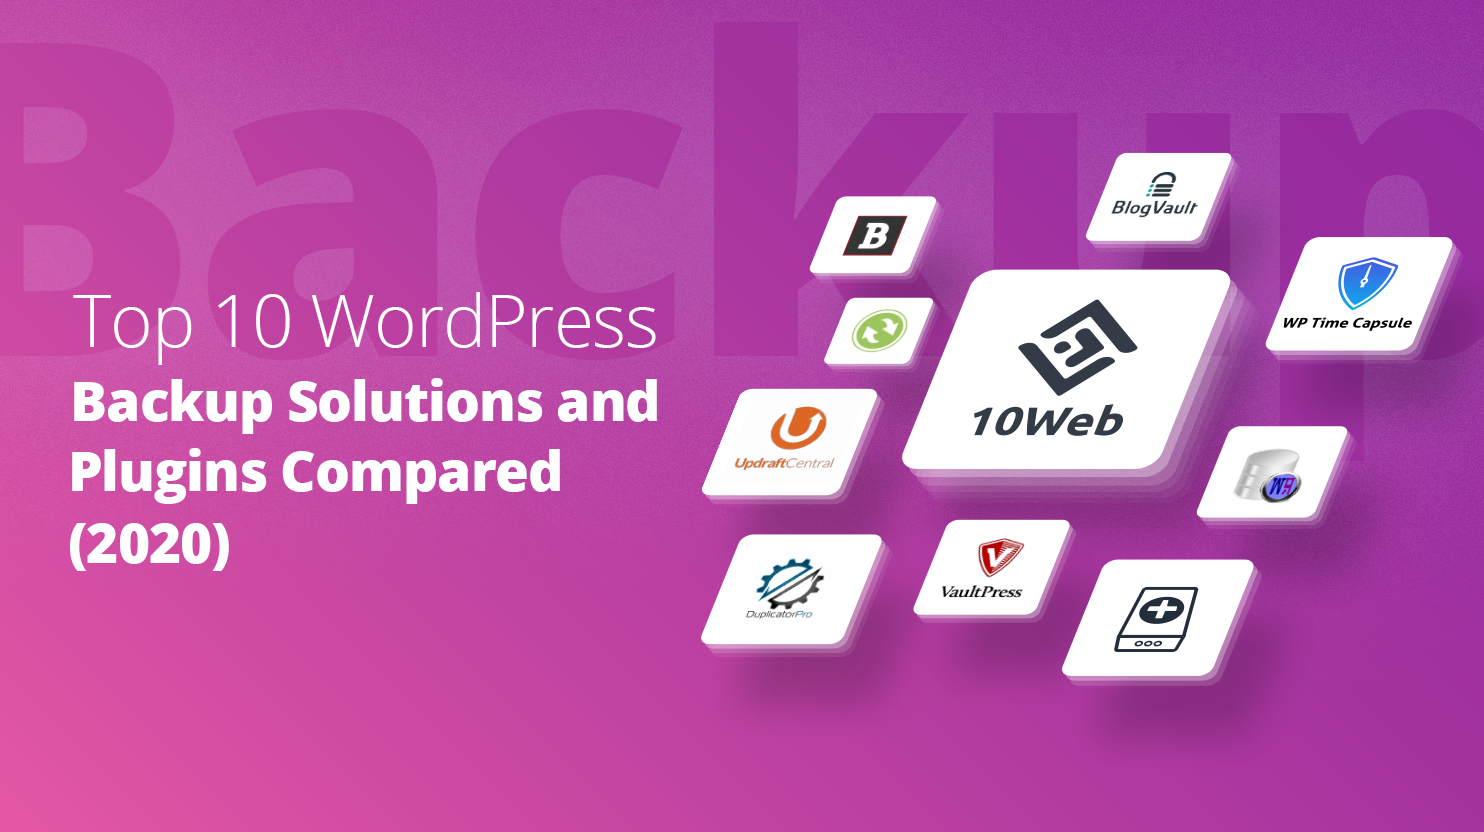 """Over a purple background, white text says """"Top 10 WordPress backup plugins and solutions compared (2020). To the right, there are white plates with logos of different backup solutions."""